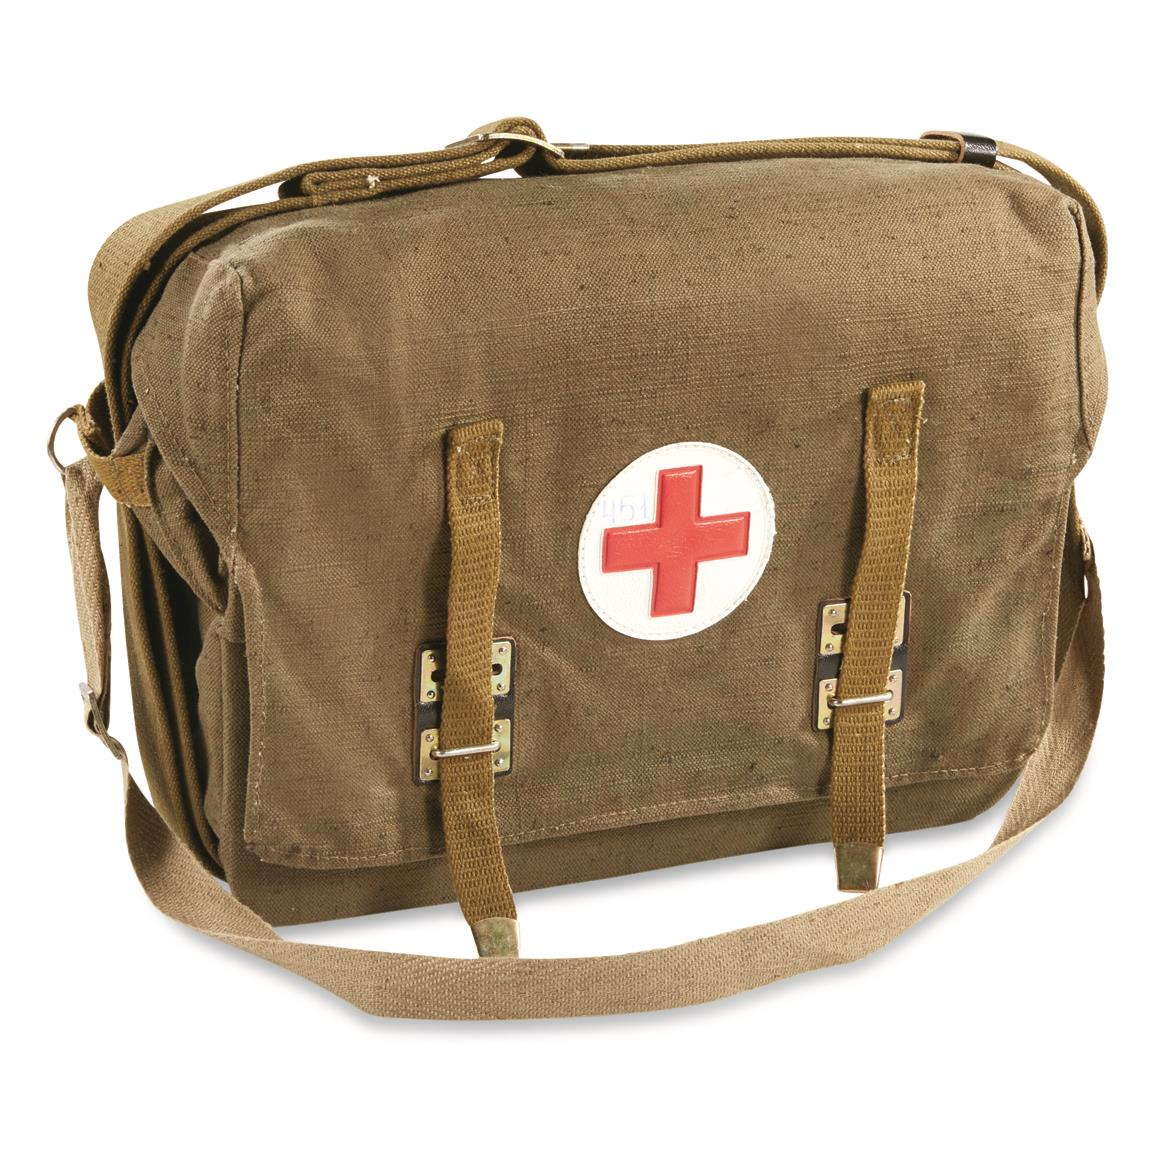 Russian Military Surplus Medical Shoulder Bag, Used